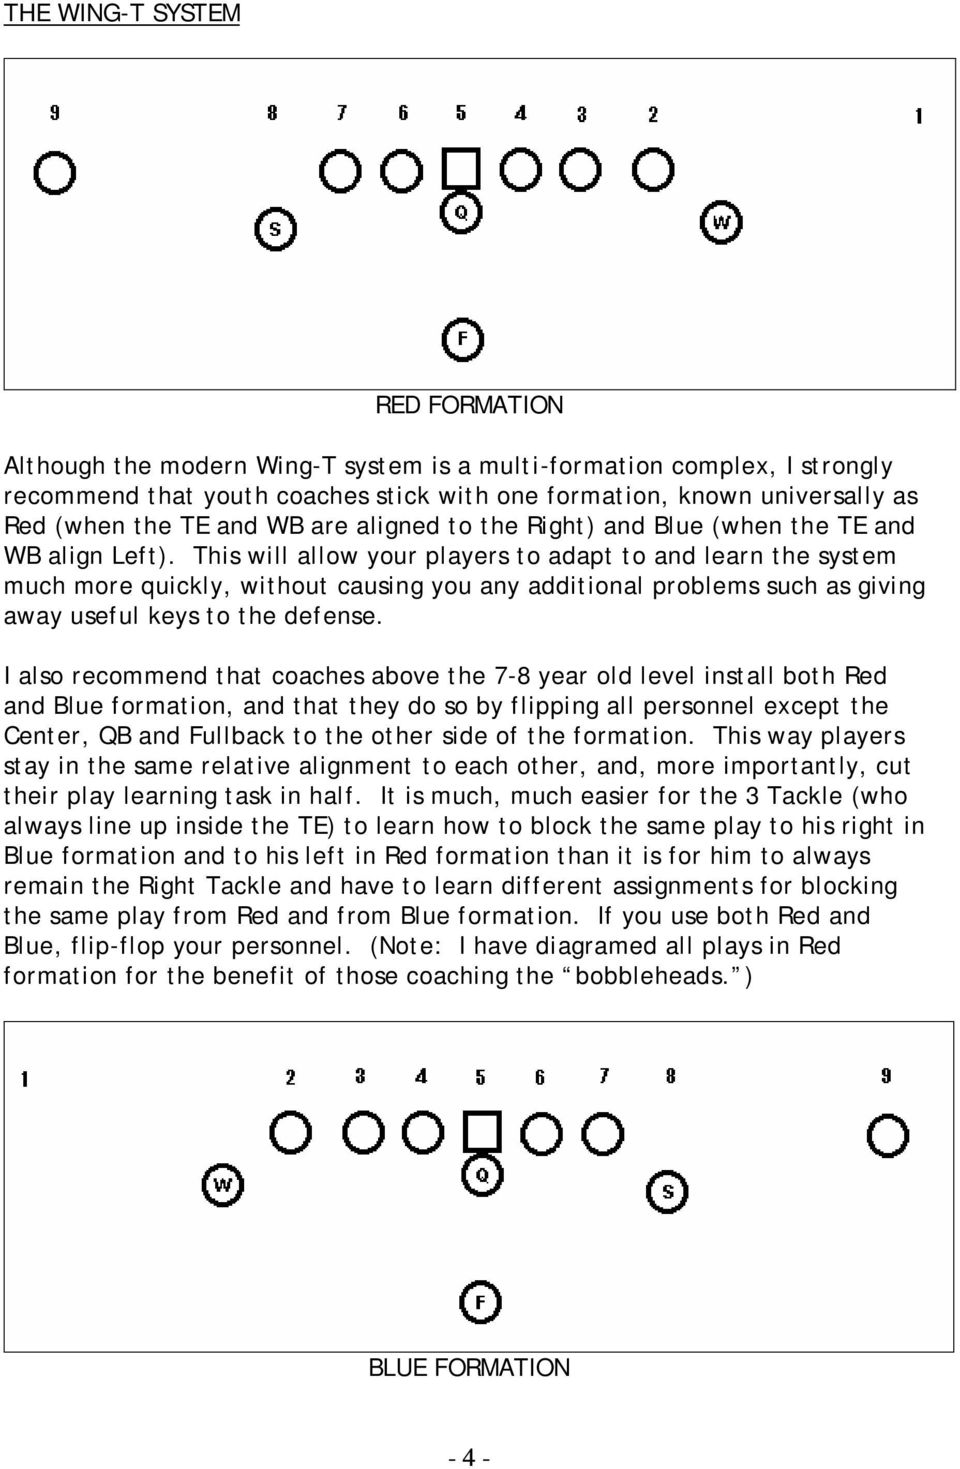 This will allow your players to adapt to and learn the system much more quickly, without causing you any additional problems such as giving away useful keys to the defense.